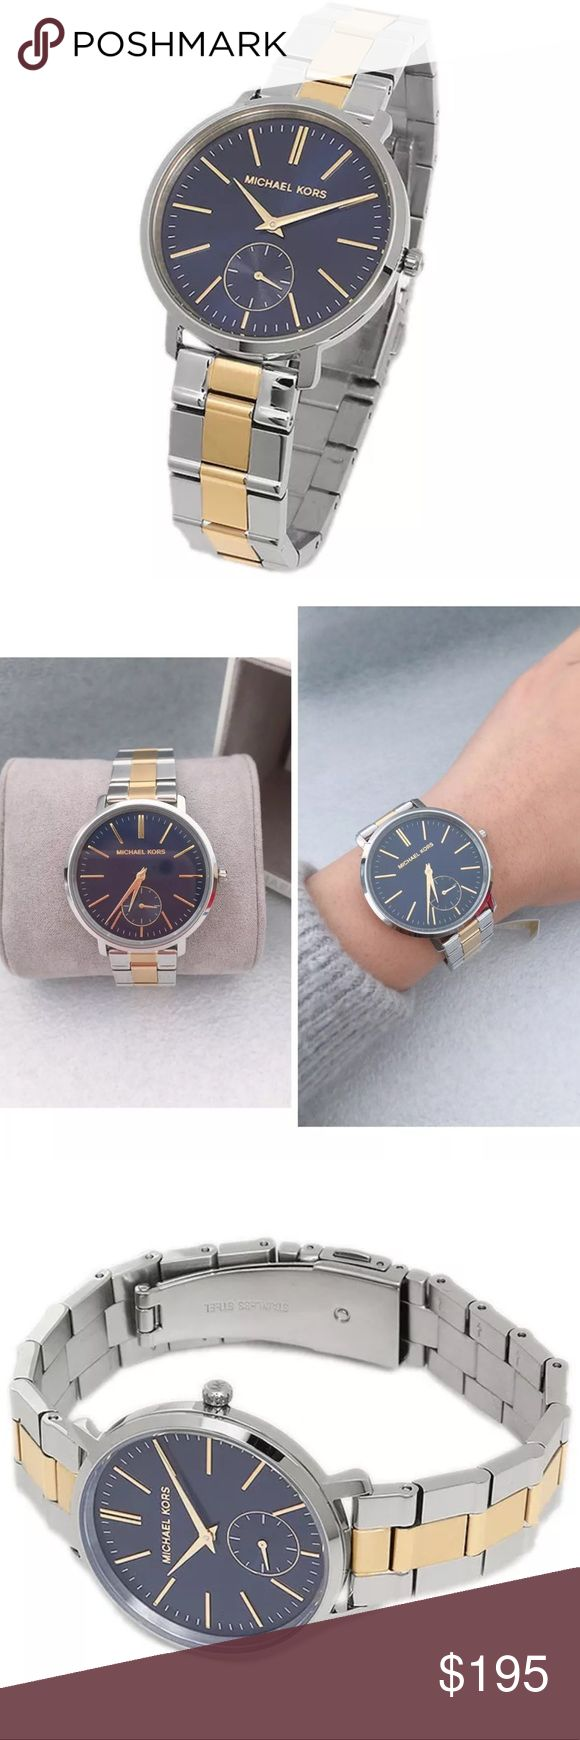 Michael Kors silver gold blue face watch Authentic. Brand new with $250 tags. Comes in original Michael Kors designer watch box with pillow, price tag, and authenticity/warranty booklet. Beautiful silver, gold with blue face stainless steel watch. Goes great with silver or gold jewelry because it is two tone. Michael Kors silver gold blue face watch. Michael Kors Accessories Watches